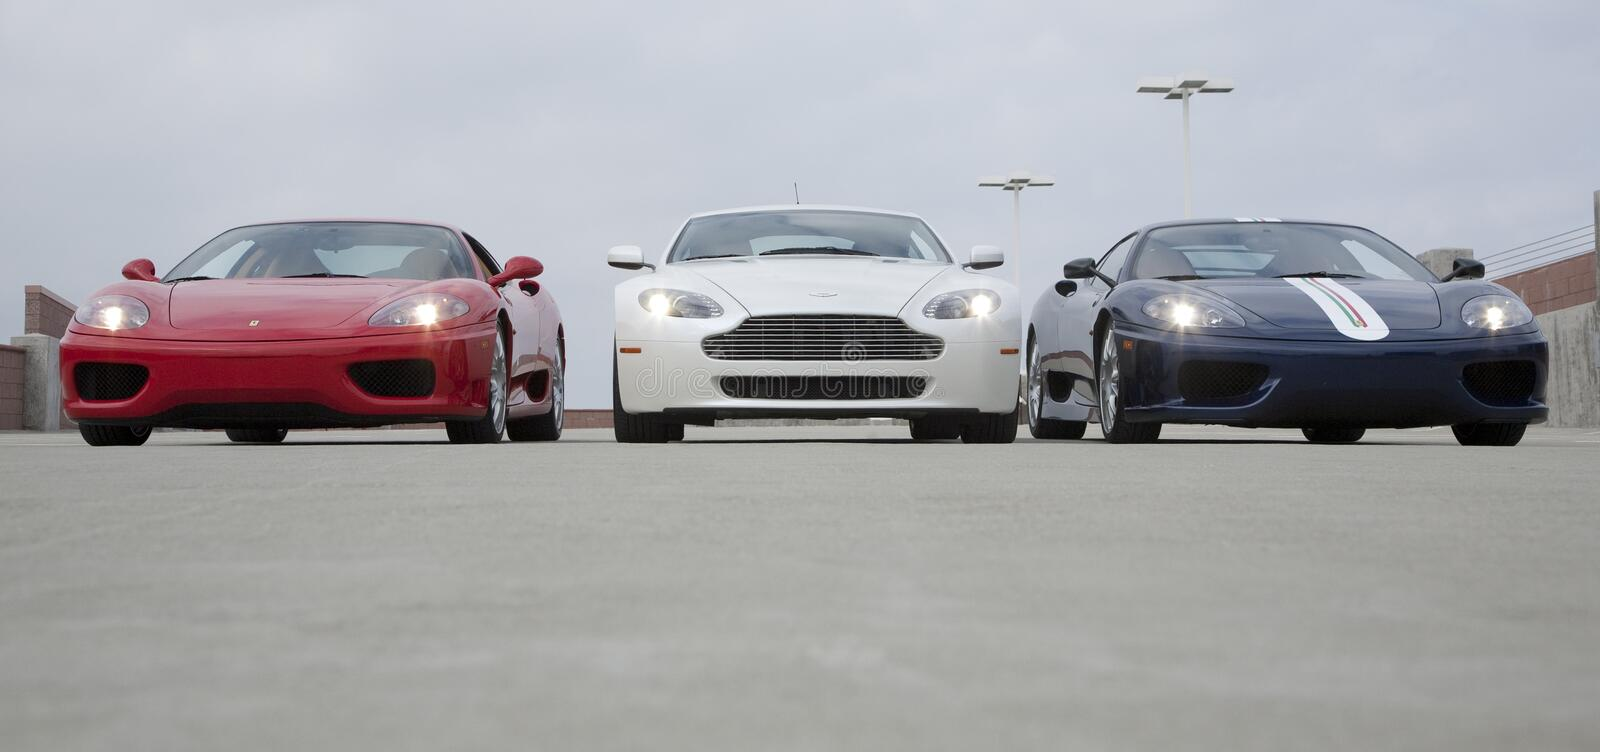 Sports Car Collection Editorial Image